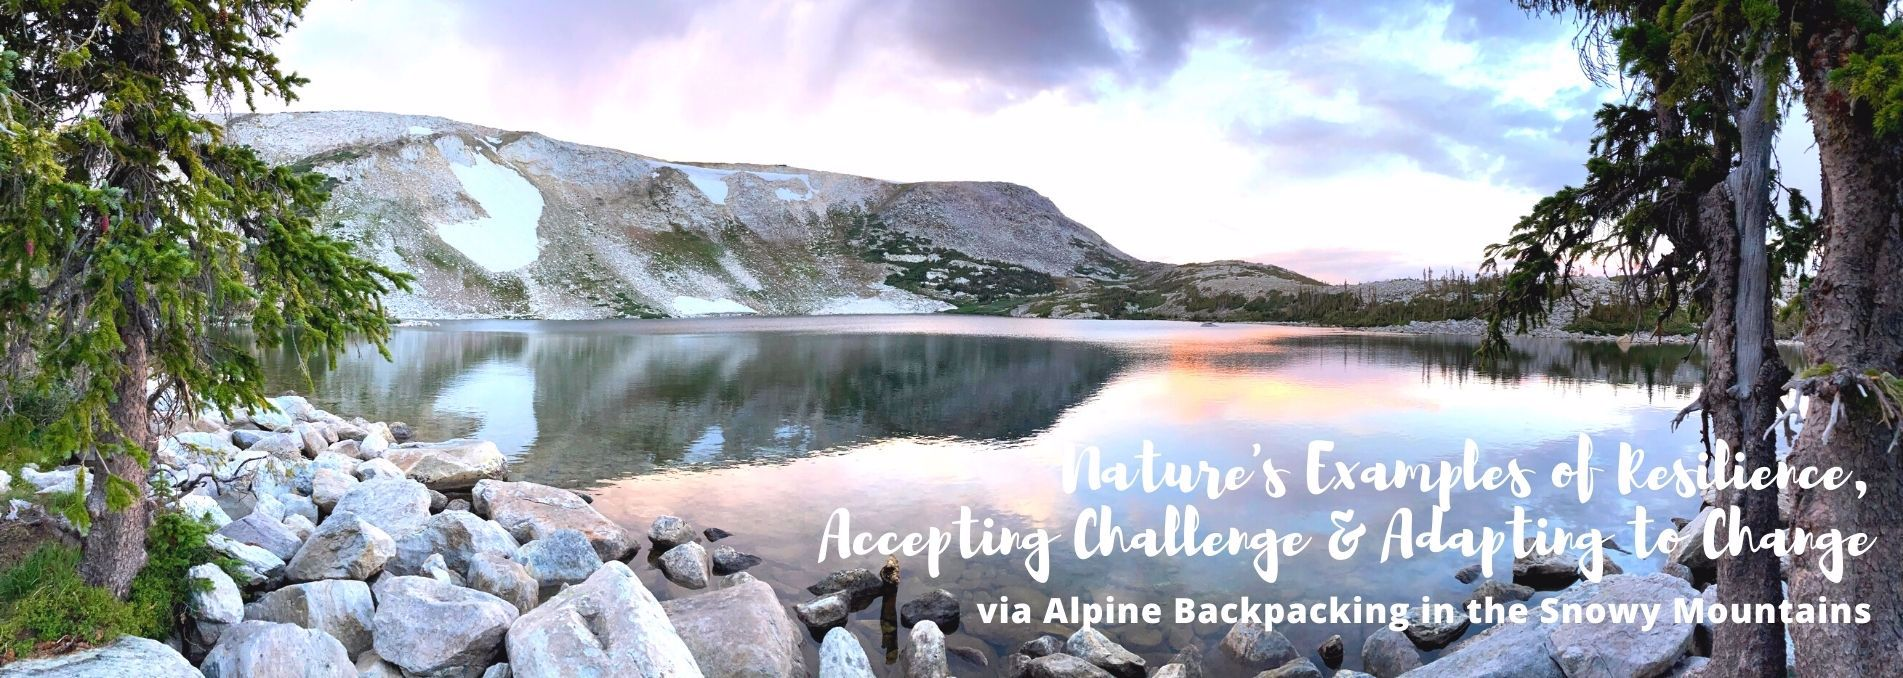 Nature's Examples of Resilience, Accepting Challenge, and Adapting to Change Via Alpine Backpacking in the Snowy Mountains